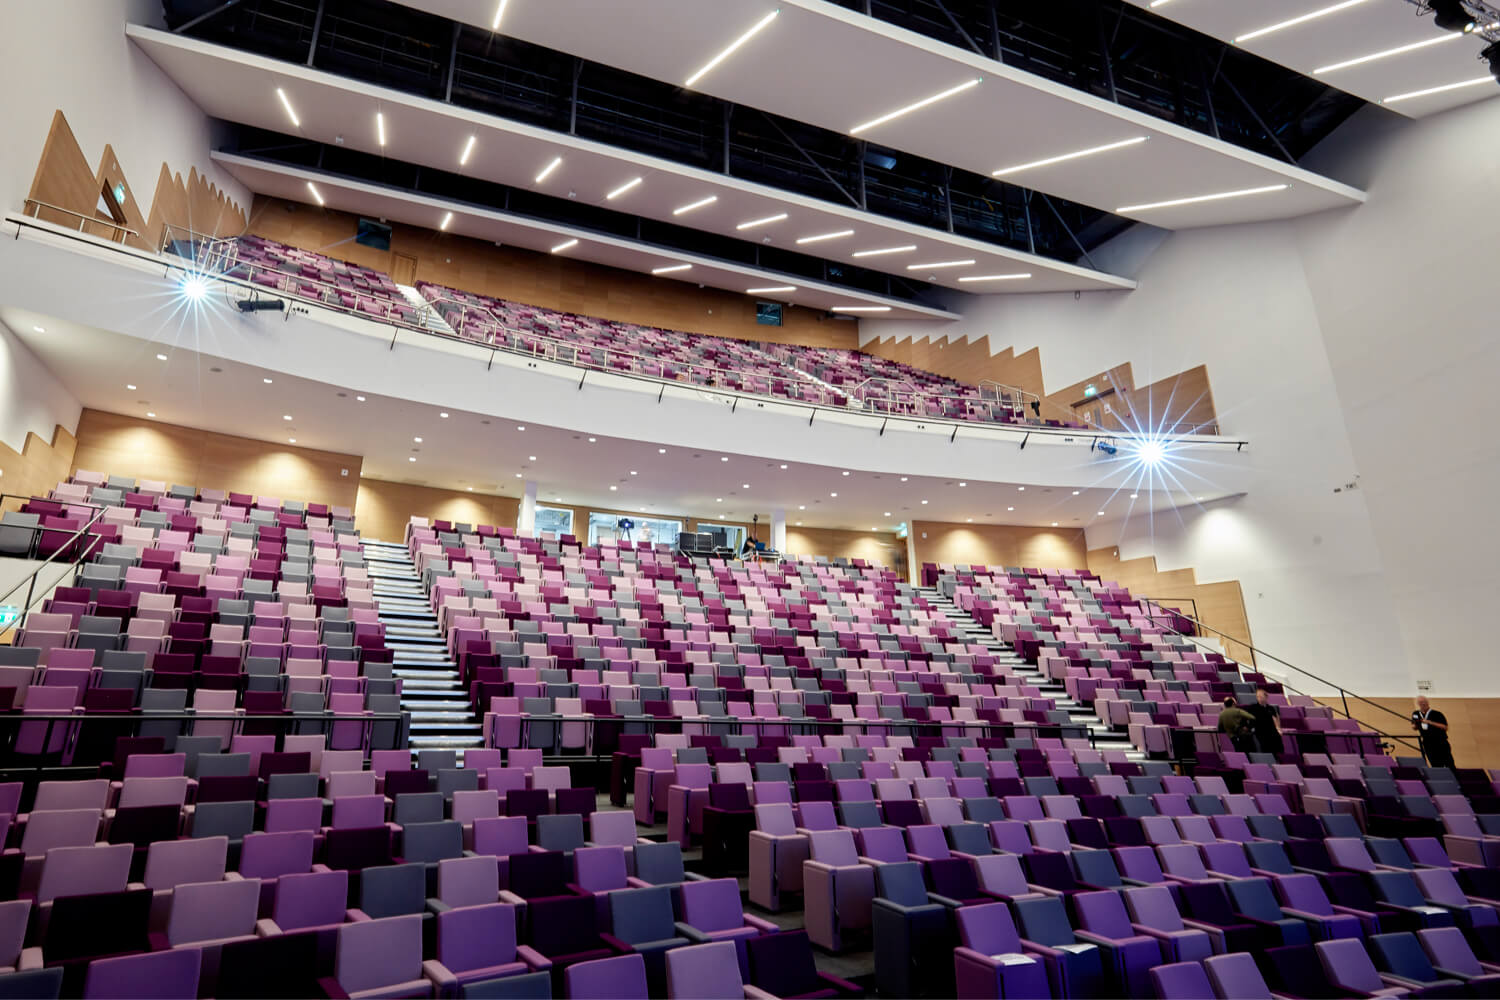 icc wales auditorium seats